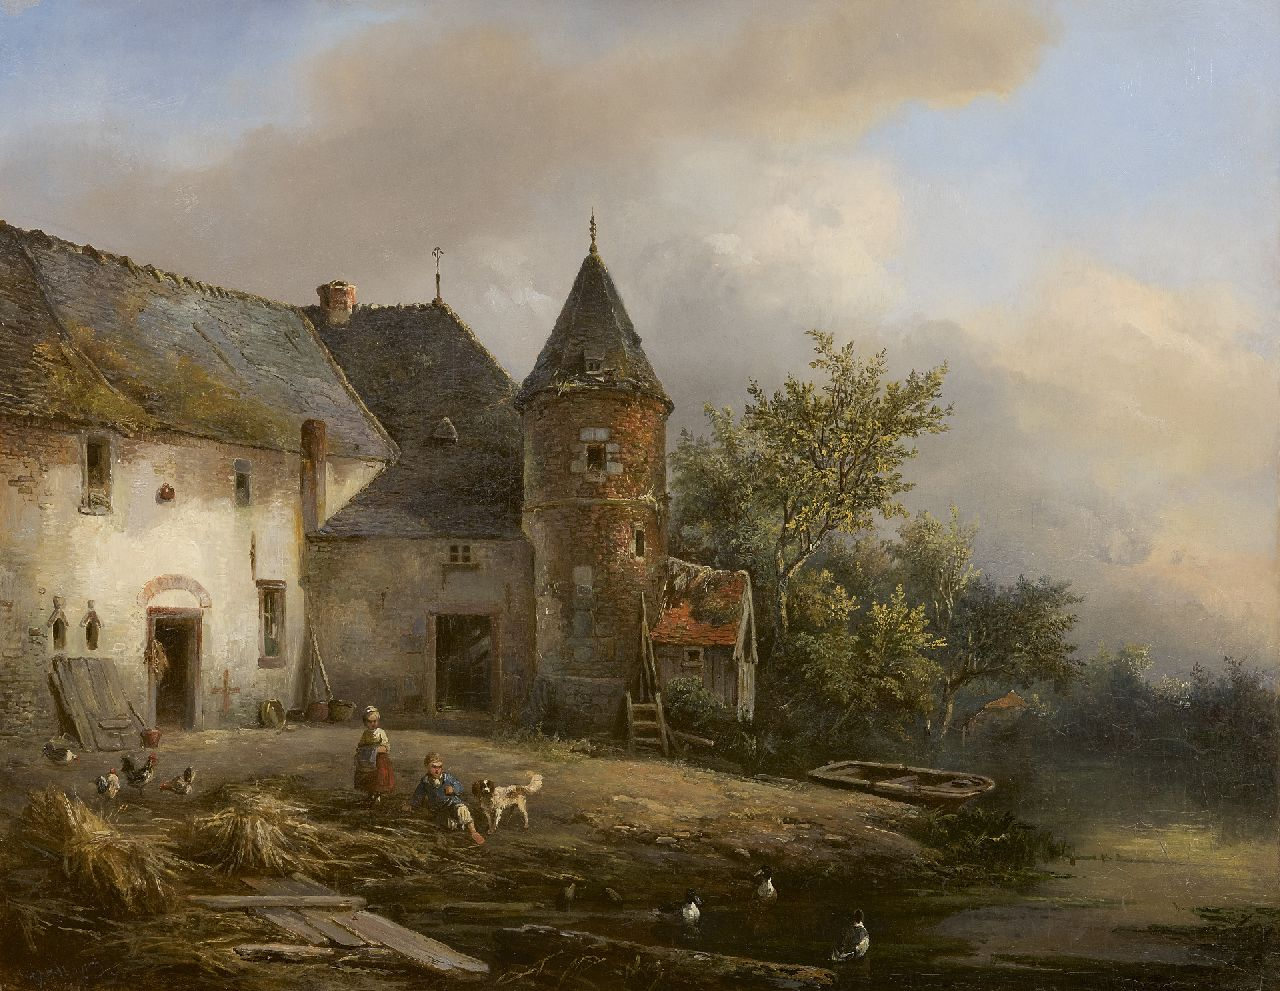 Willem George Wagner | Children playing on a farmyard, oil on panel, 61.0 x 77.1 cm, signed l.l.